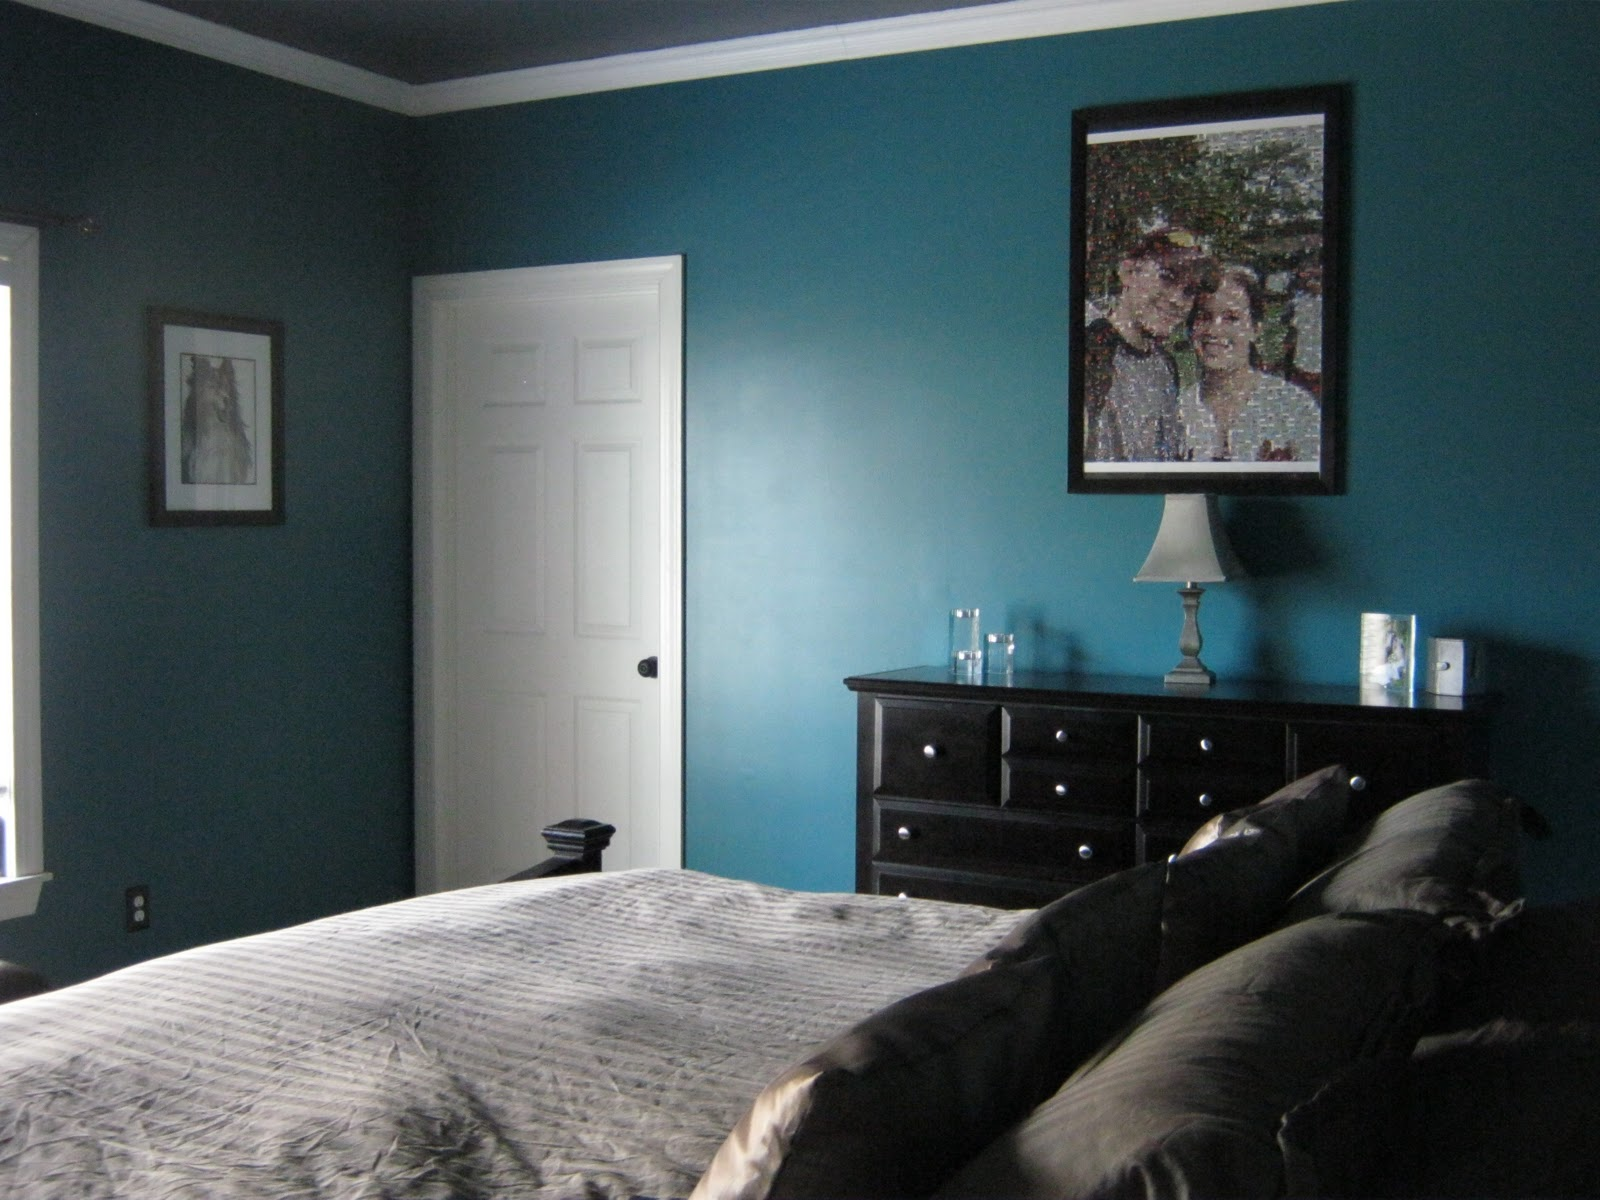 Living Room Ideas Teal gray and teal bedroom best 25+ grey teal bedrooms ideas on